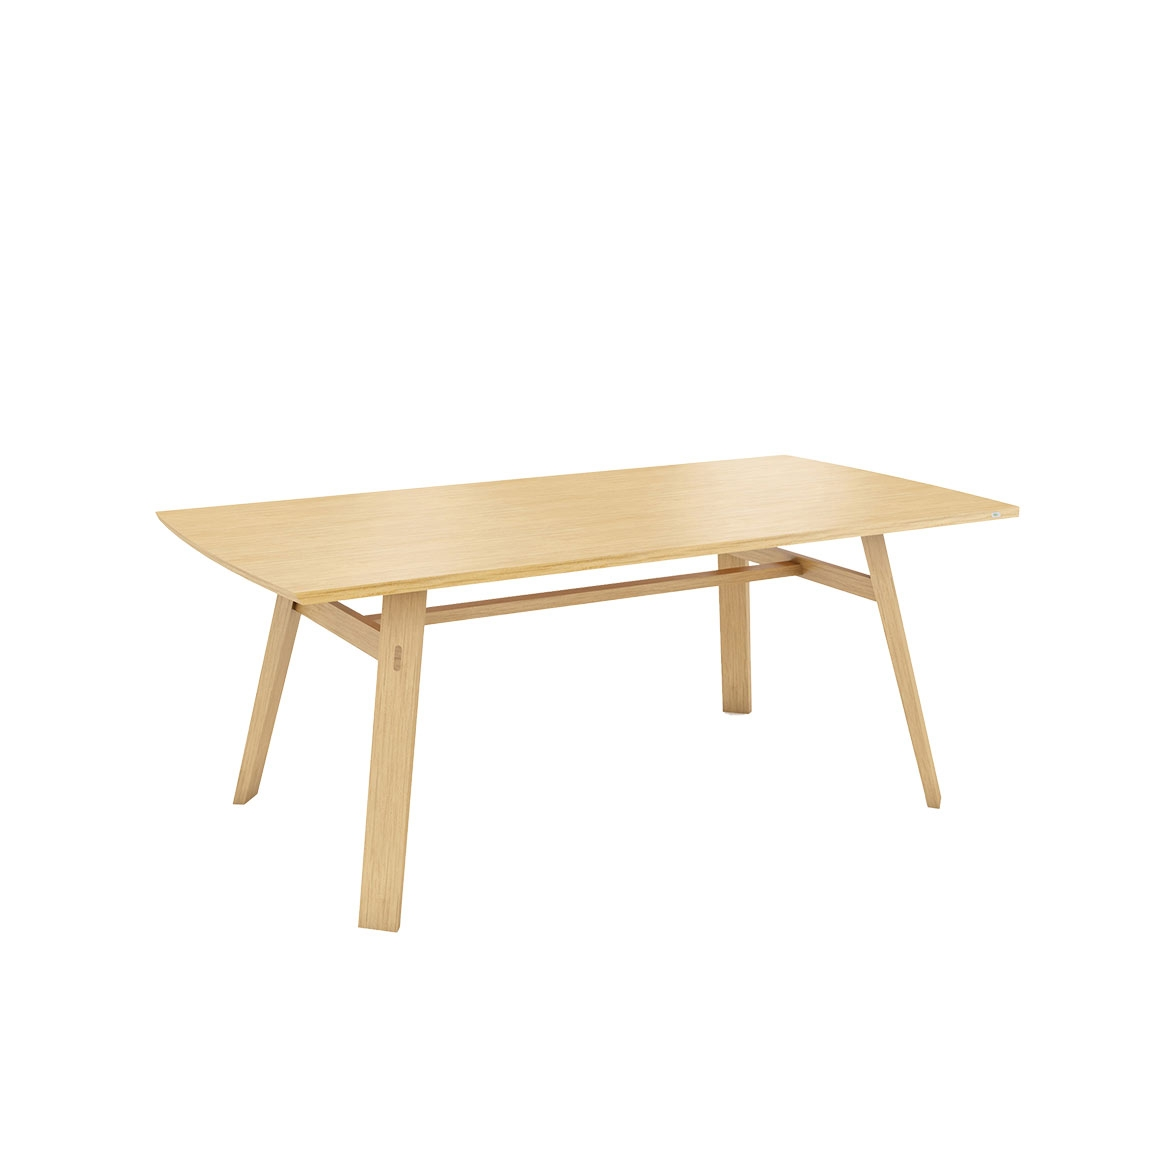 Tate oak dining table